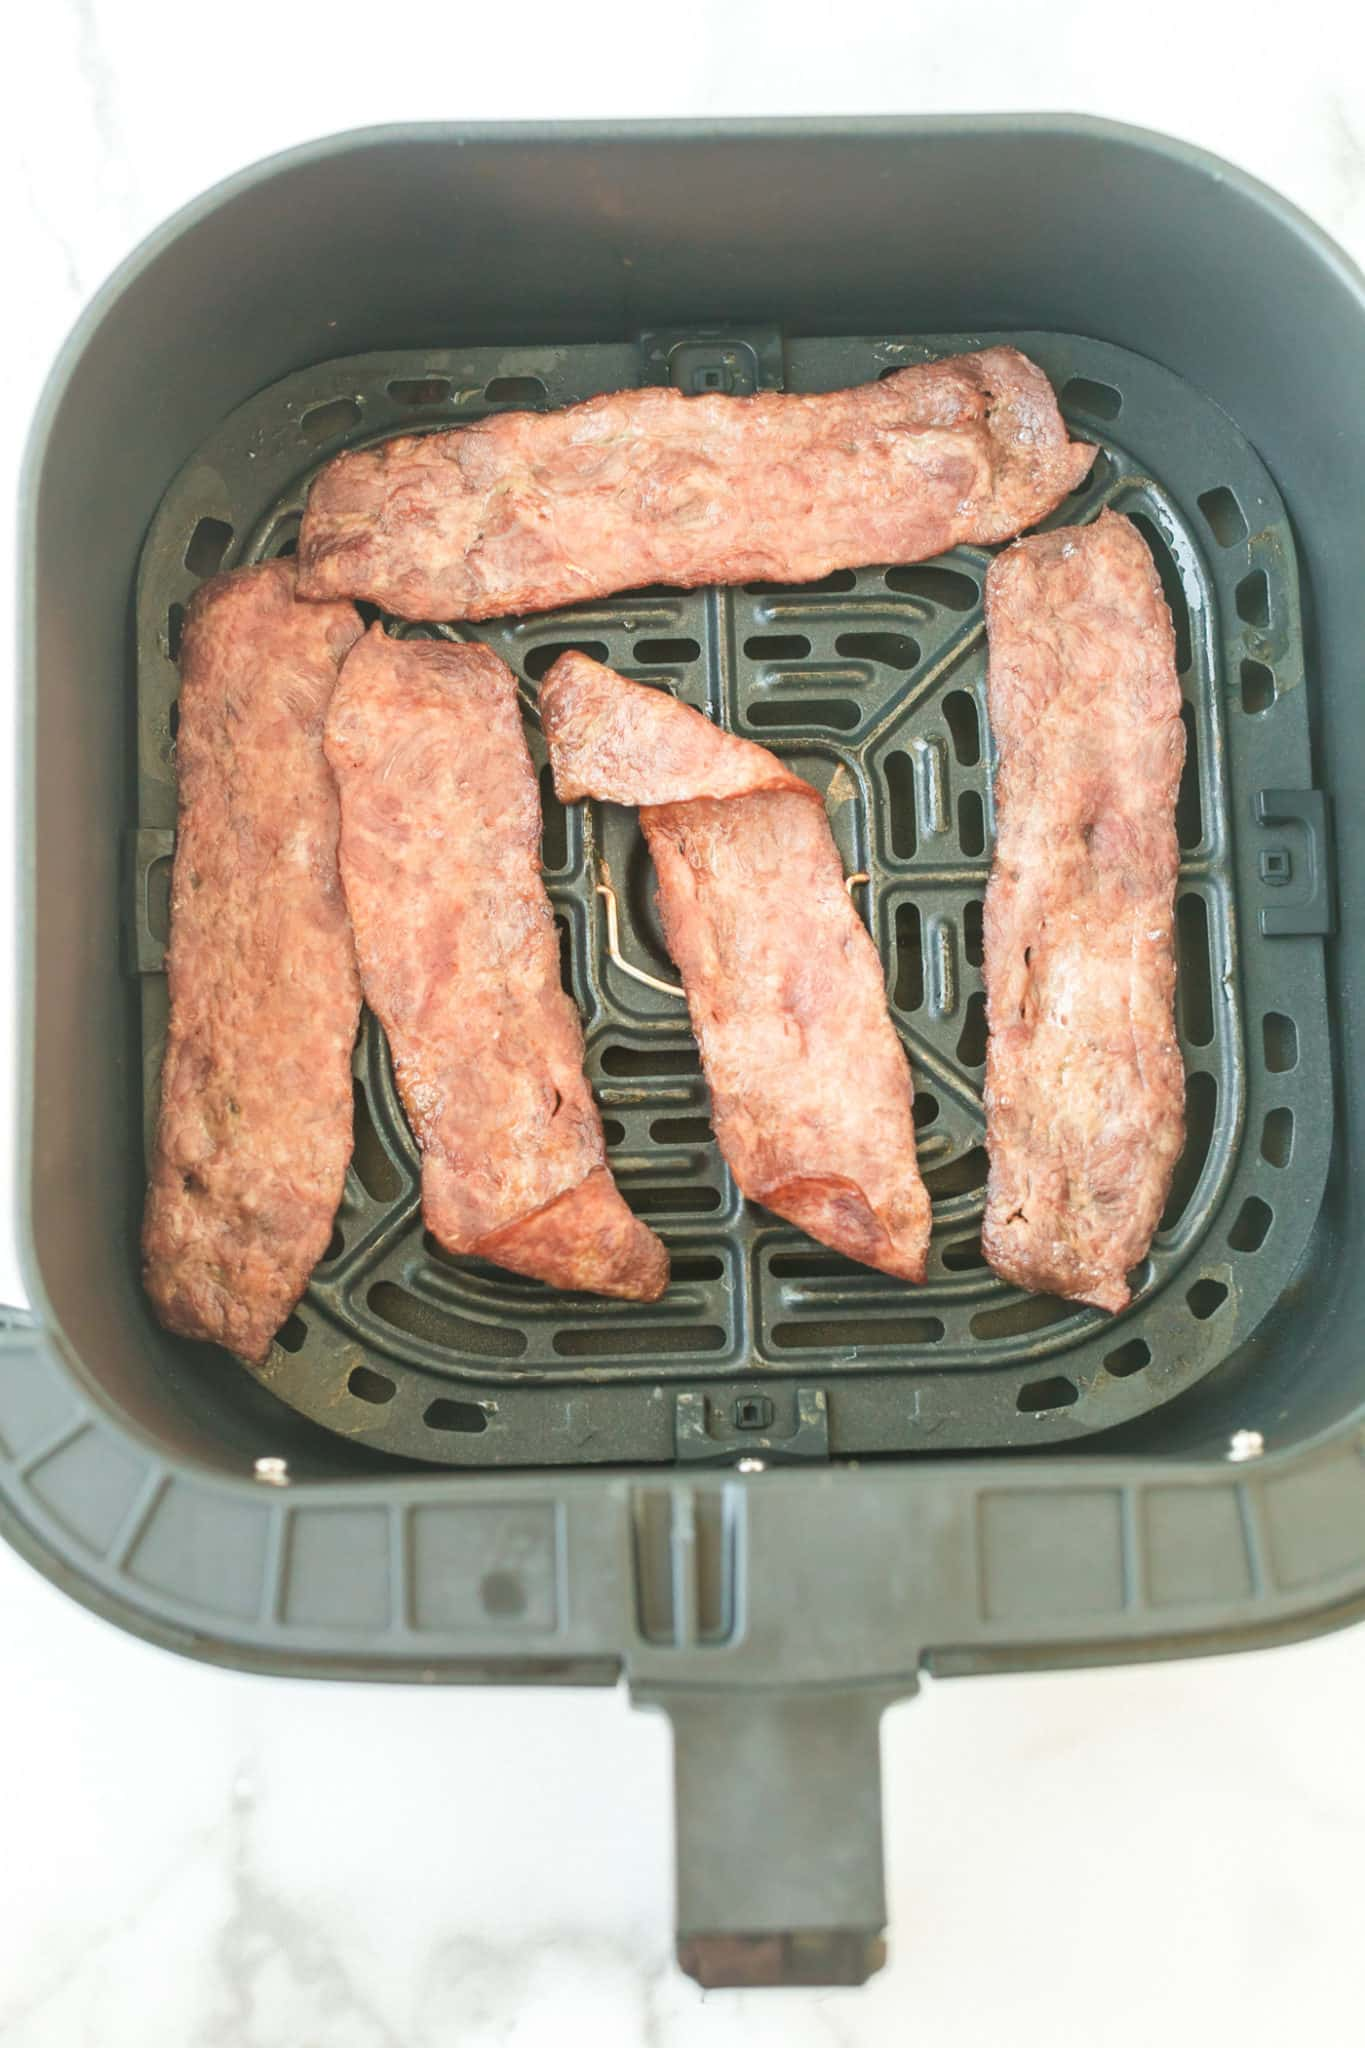 five slices of cooked turkey bacon in an air fryer